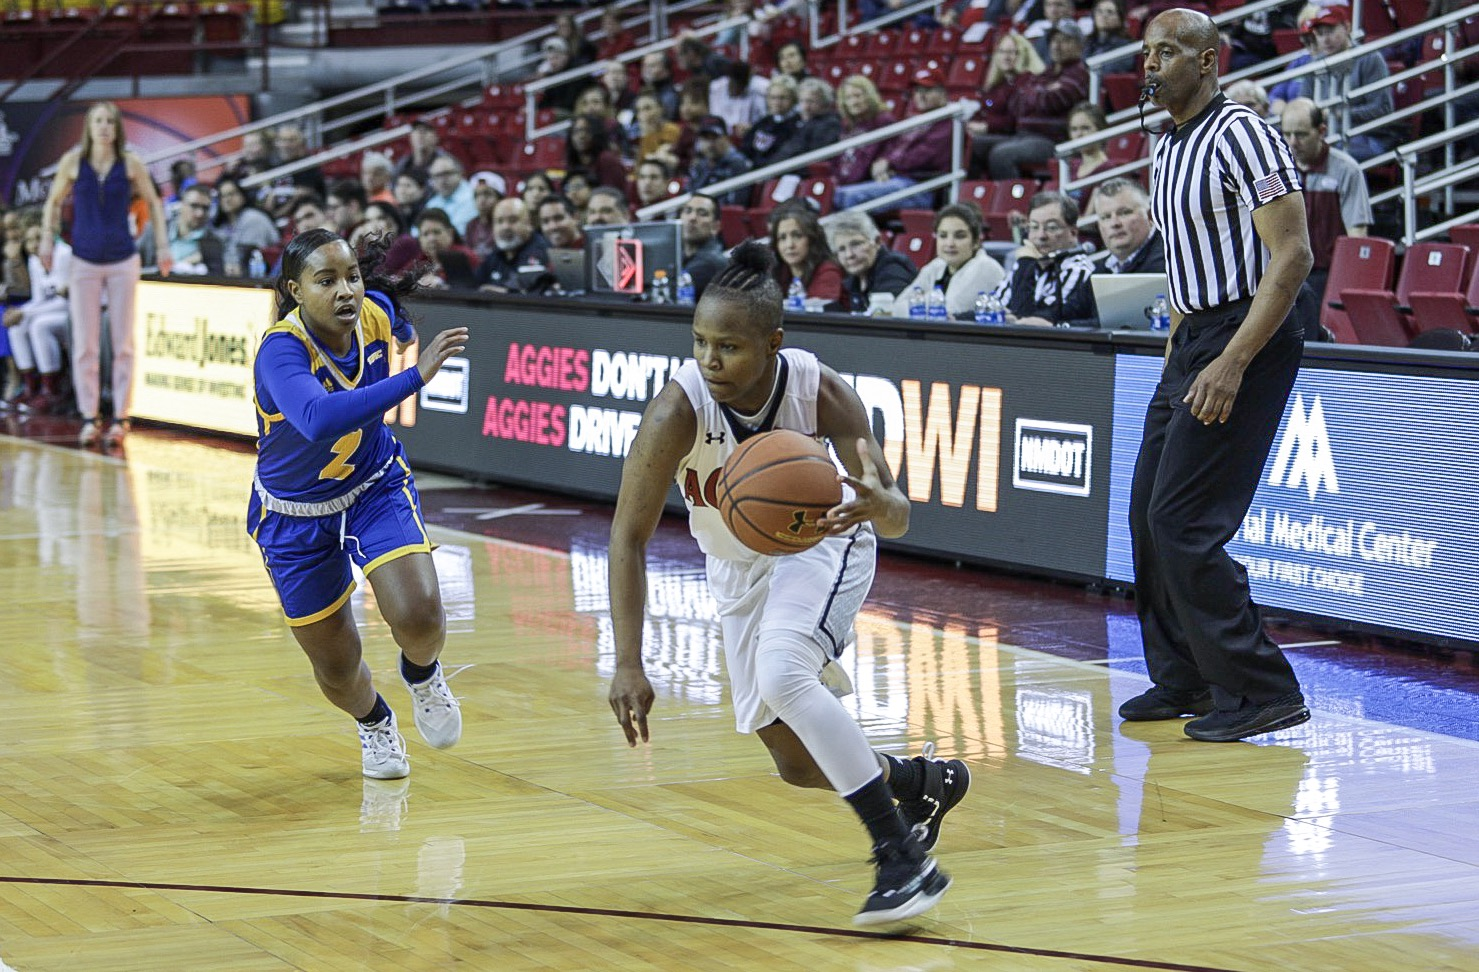 New Mexico State makes amends for their 54-51 loss at Grand Canyon in January with an emphatic 29-point win over their conference rivals.